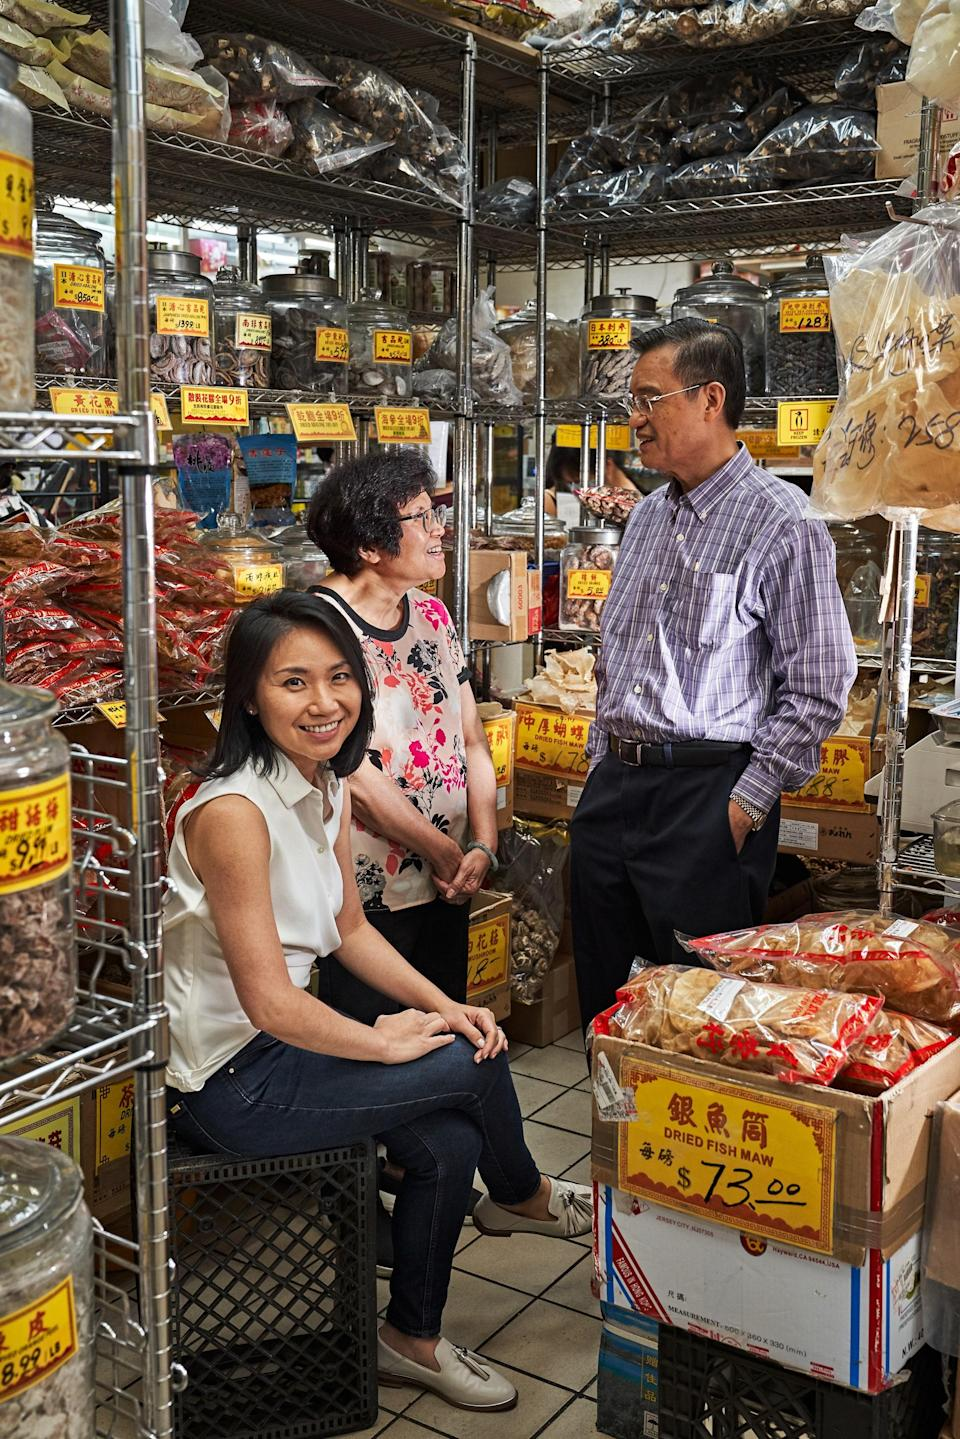 """To re-create the flavors of Chinatown in your own kitchen, hit <a href=""""https://powing.com/"""" rel=""""nofollow noopener"""" target=""""_blank"""" data-ylk=""""slk:Po Wing Hong"""" class=""""link rapid-noclick-resp""""><strong>Po Wing Hong</strong></a><strong>,</strong> whose ruby-red awning—and the shopping attendant who diligently parks customers' rolling carts outside—makes visits feel like a trip to the theater. Inside, the space opens up to reveal long aisles stocked with everything from bottled sauces and bagged noodles to purplish dried sausages and slick jellyfish slices. (You can also pick up dried goods like plums and sea cucumbers, sold by weight.) <a href=""""https://www.aquabestnyc.com/"""" rel=""""nofollow noopener"""" target=""""_blank"""" data-ylk=""""slk:Aqua Best"""" class=""""link rapid-noclick-resp""""><strong>Aqua Best</strong></a><strong>,</strong> on Grand, sells glistening fluke, branzino, and sea bass, all propped up on ice. If your day starts early, swing by the fruit stands flanking both sides of Mulberry Street near the intersection of Grand: Vendors hawk fresh oranges and just- ripe cherries, prickly dragon fruit, and unwieldy durian beneath multicolored beach umbrellas."""